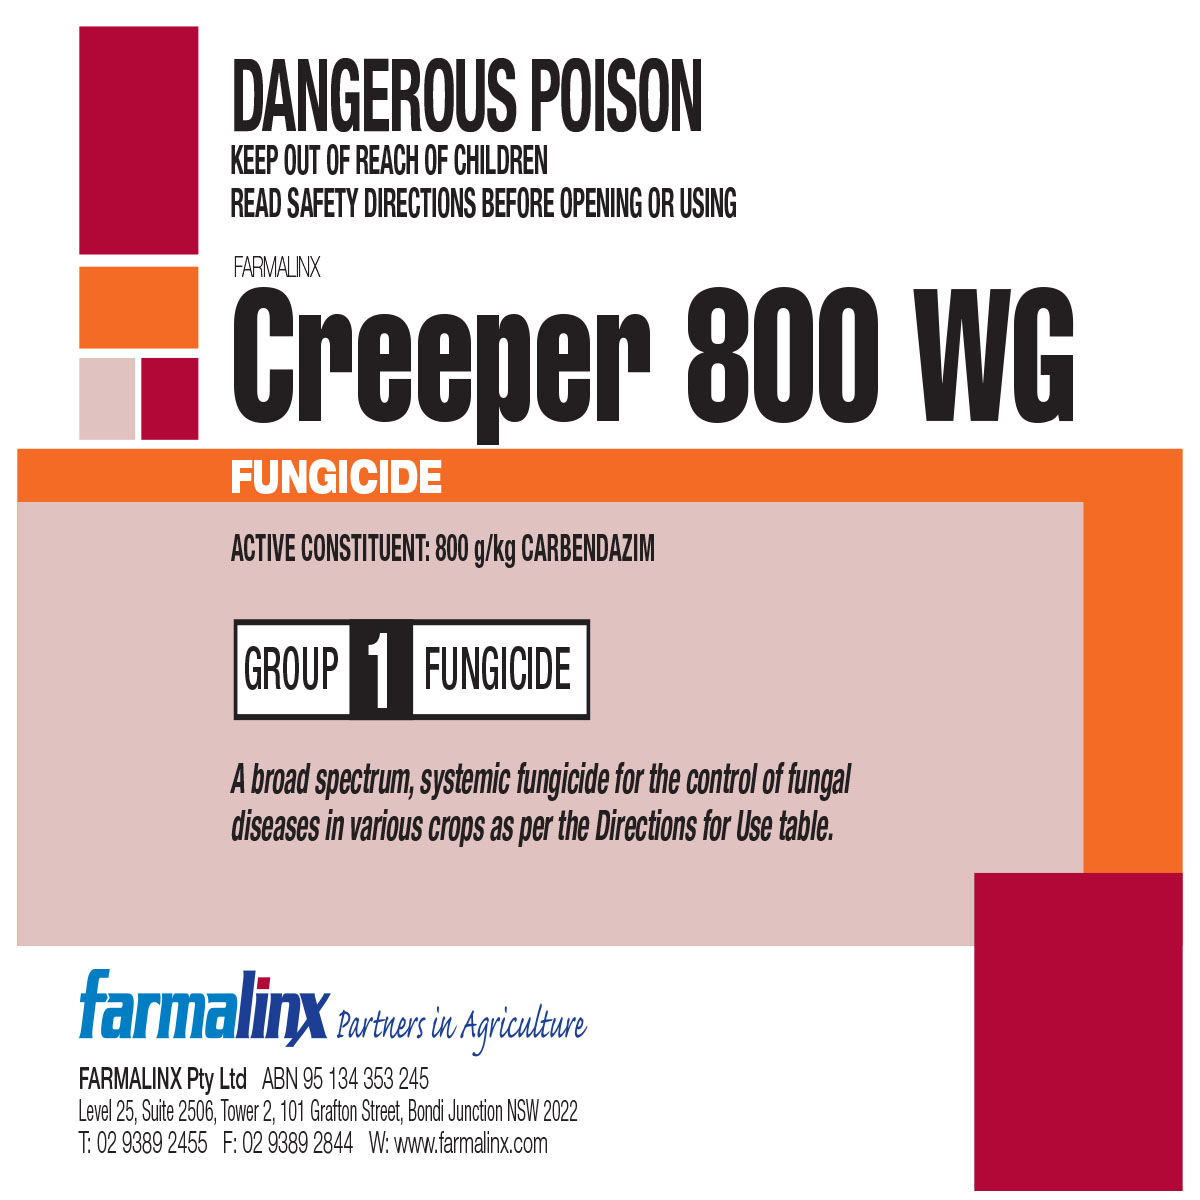 This is a graphic of Simplicity Captan 80 Wg Label